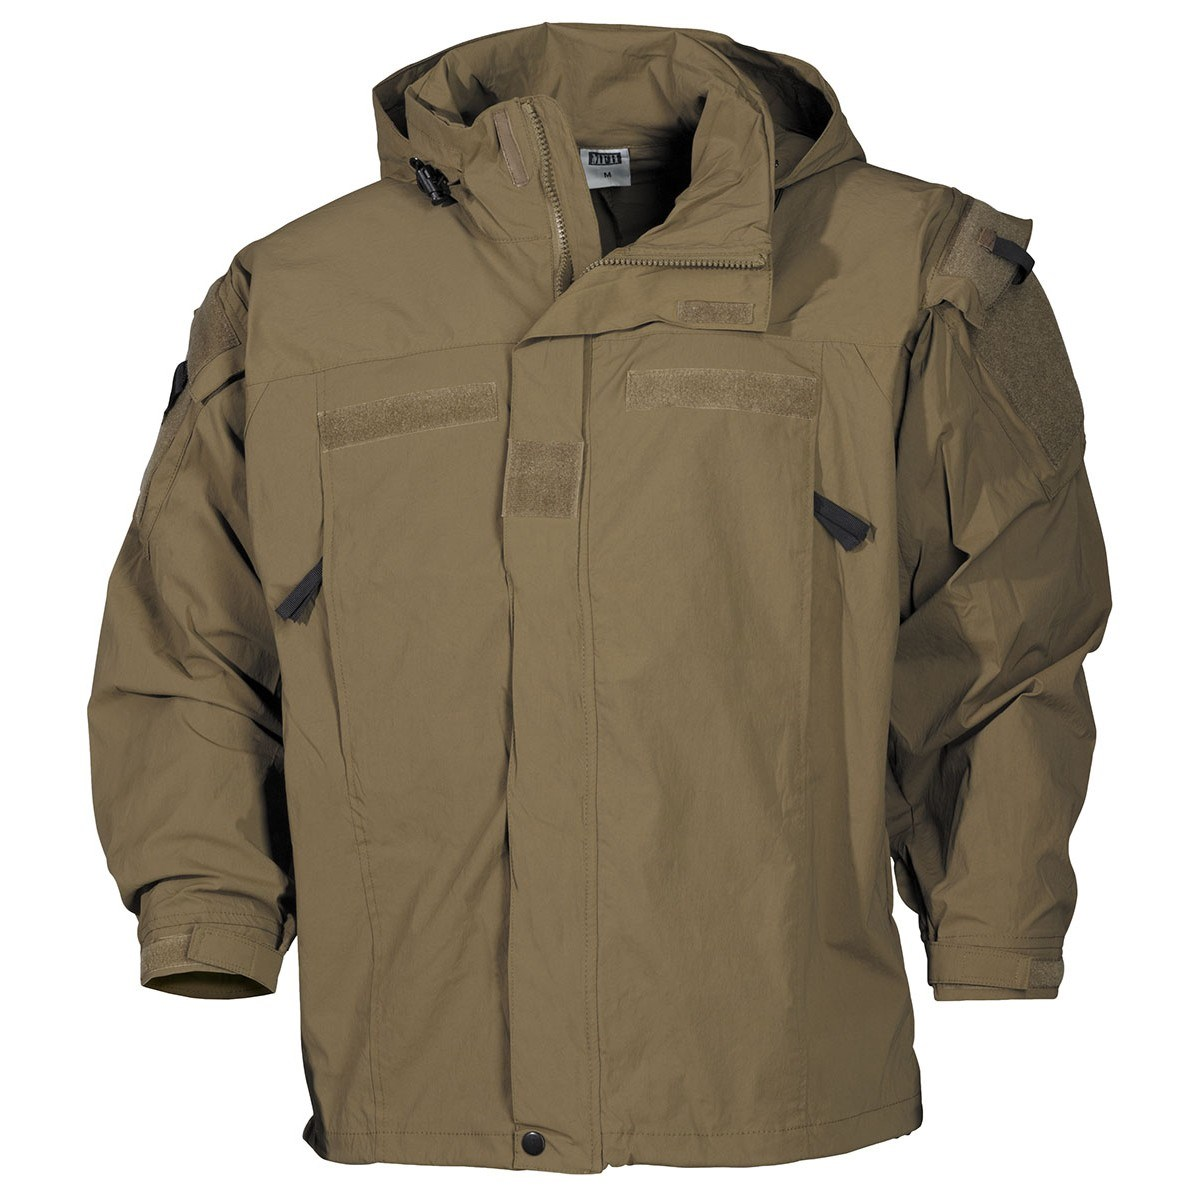 Bunda US softshell GEN III LEVEL 5 COYOTE BROWN MFH int. comp. 03401R L-11